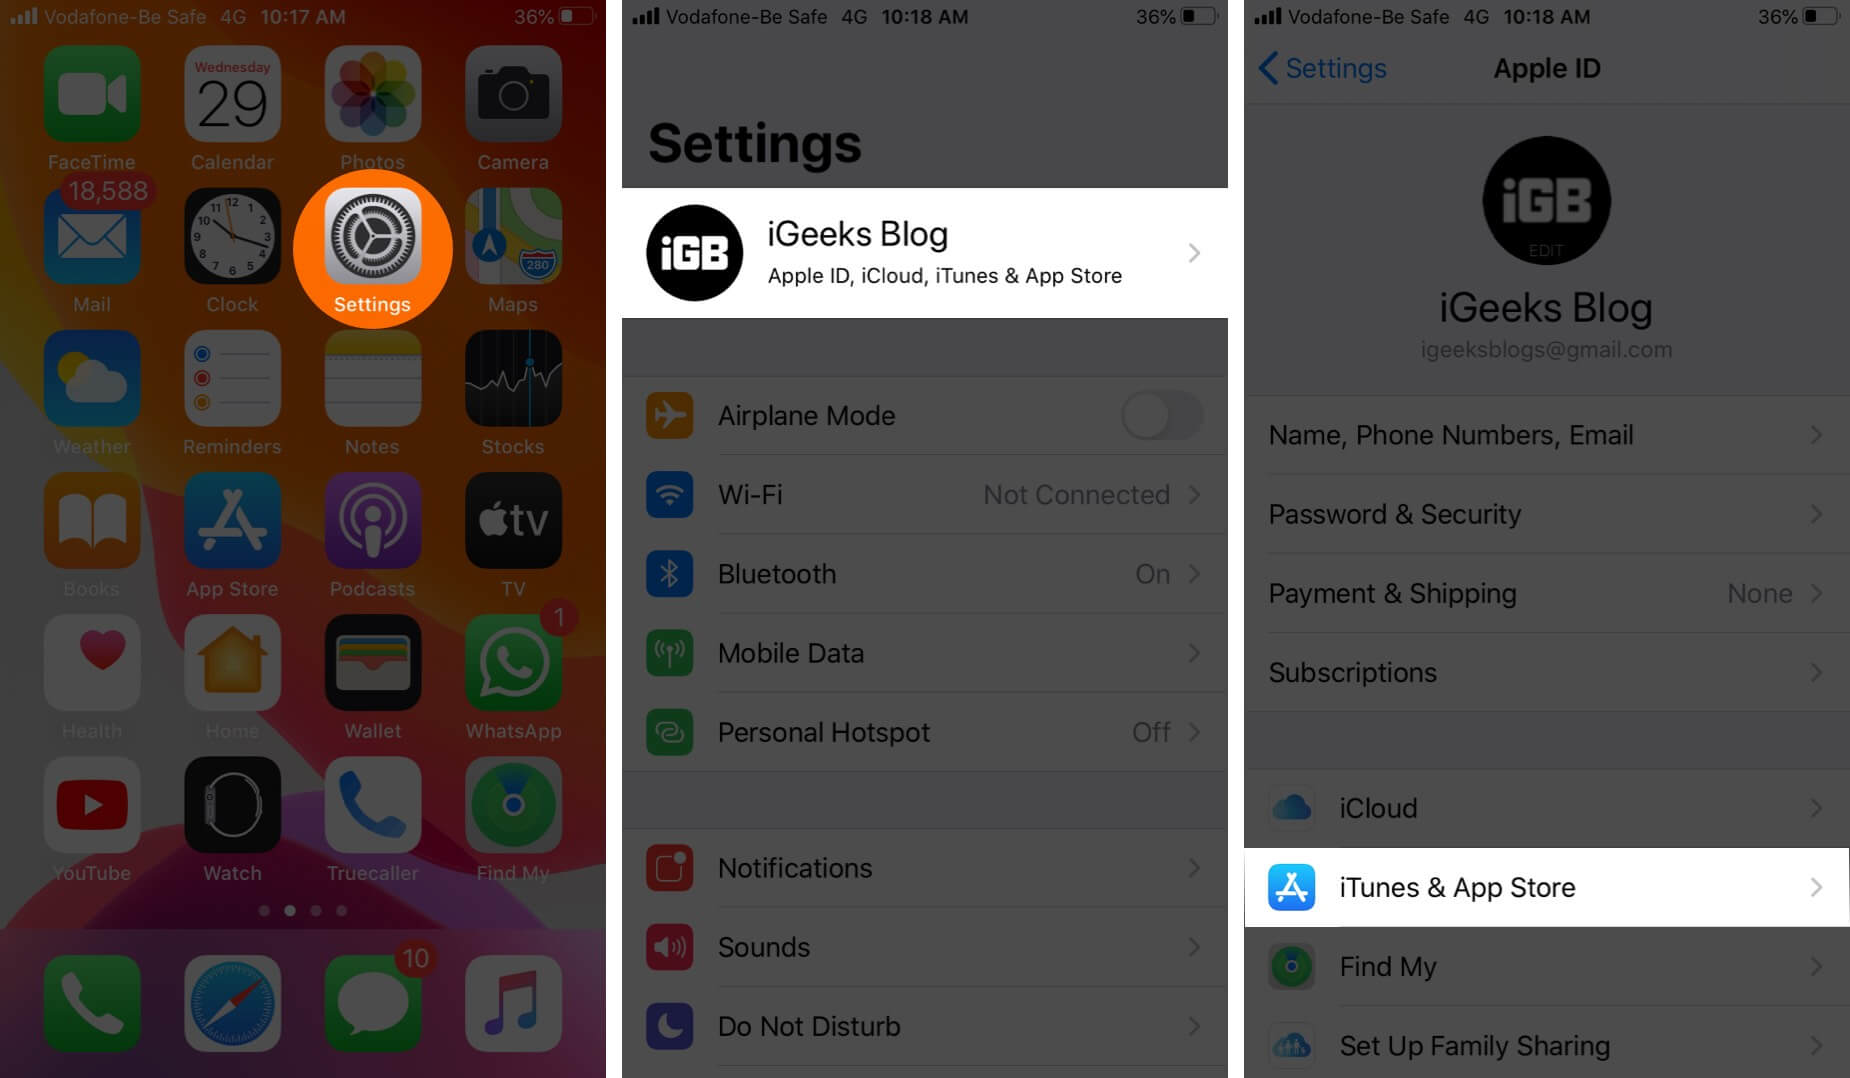 Open Settings Tap on Profile and Tap on iTunes & App Store